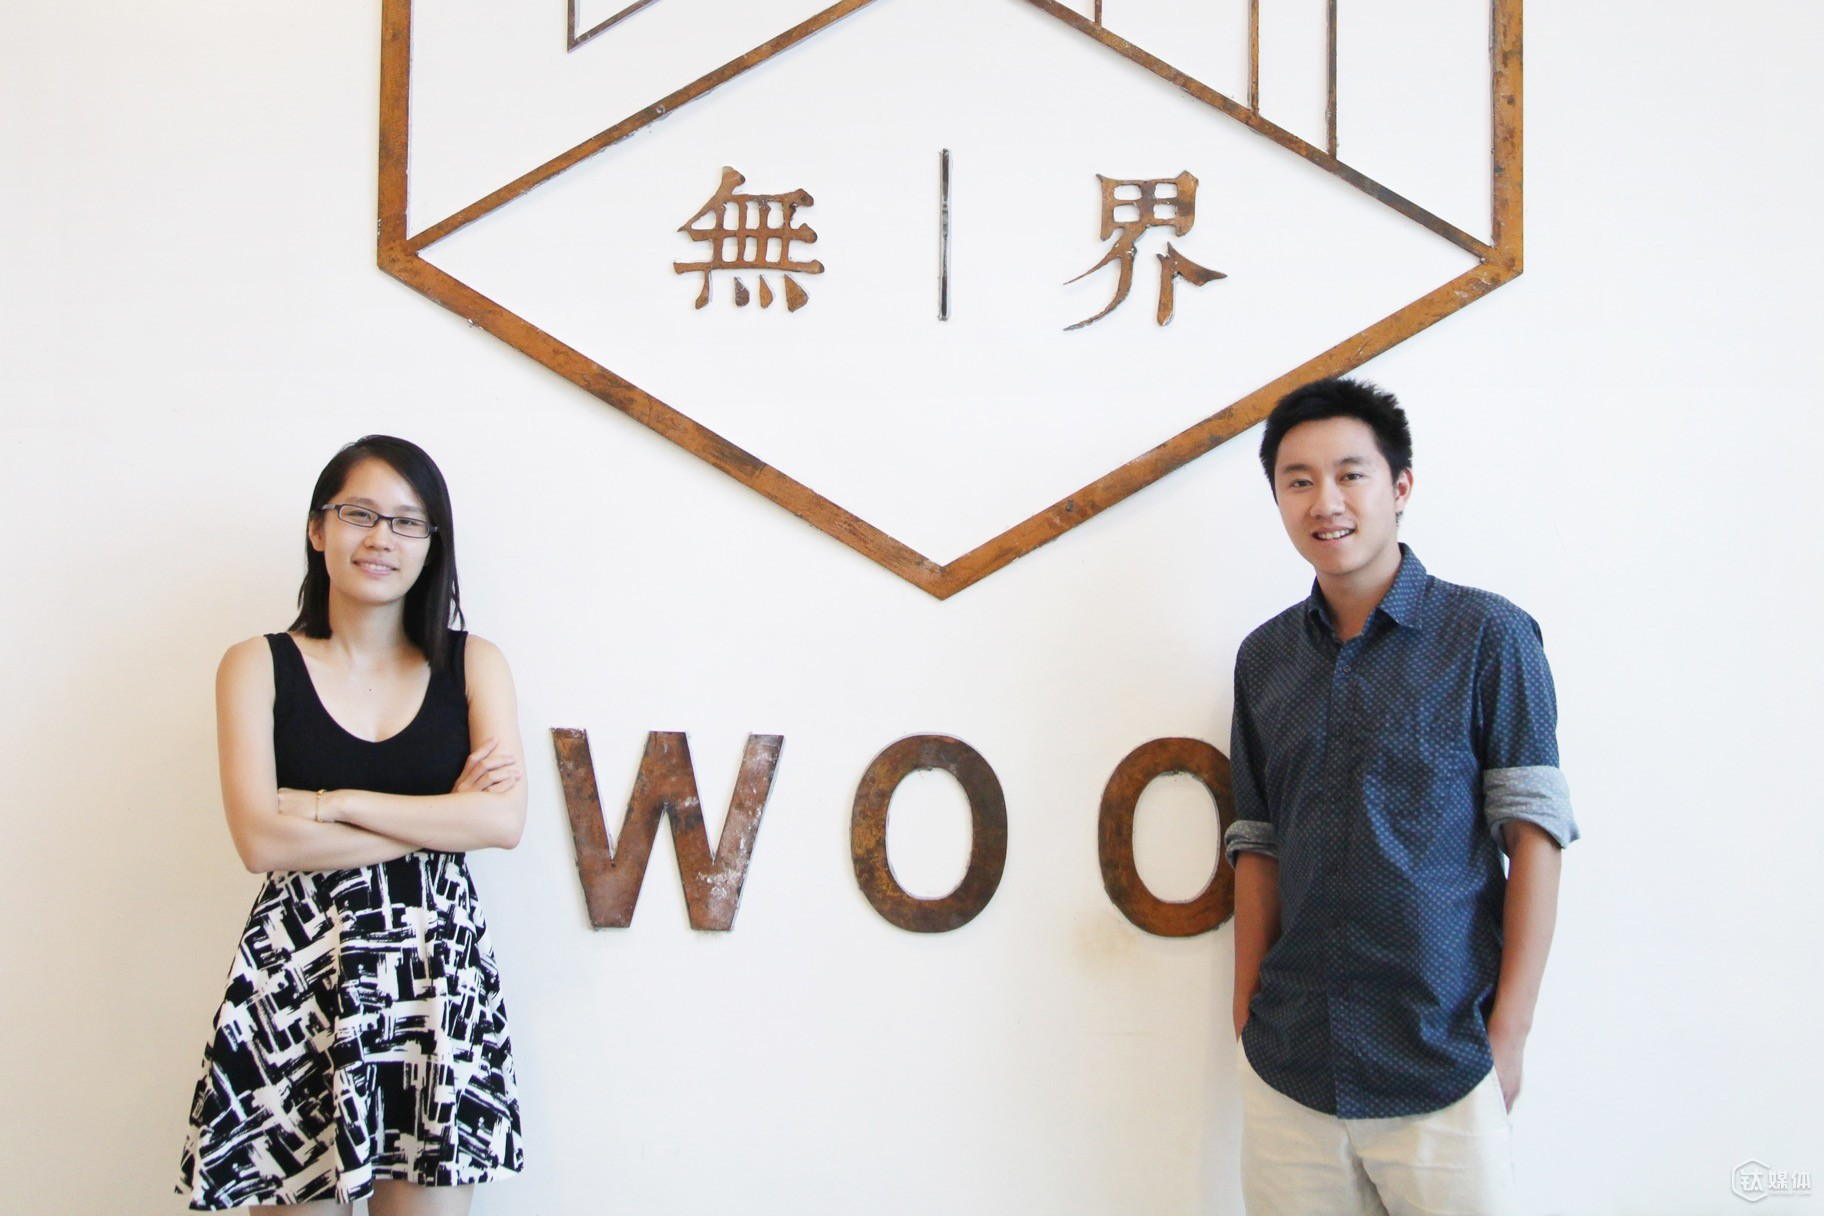 Wan Liushuo and Han Xinqi, co-founders of WooSpace